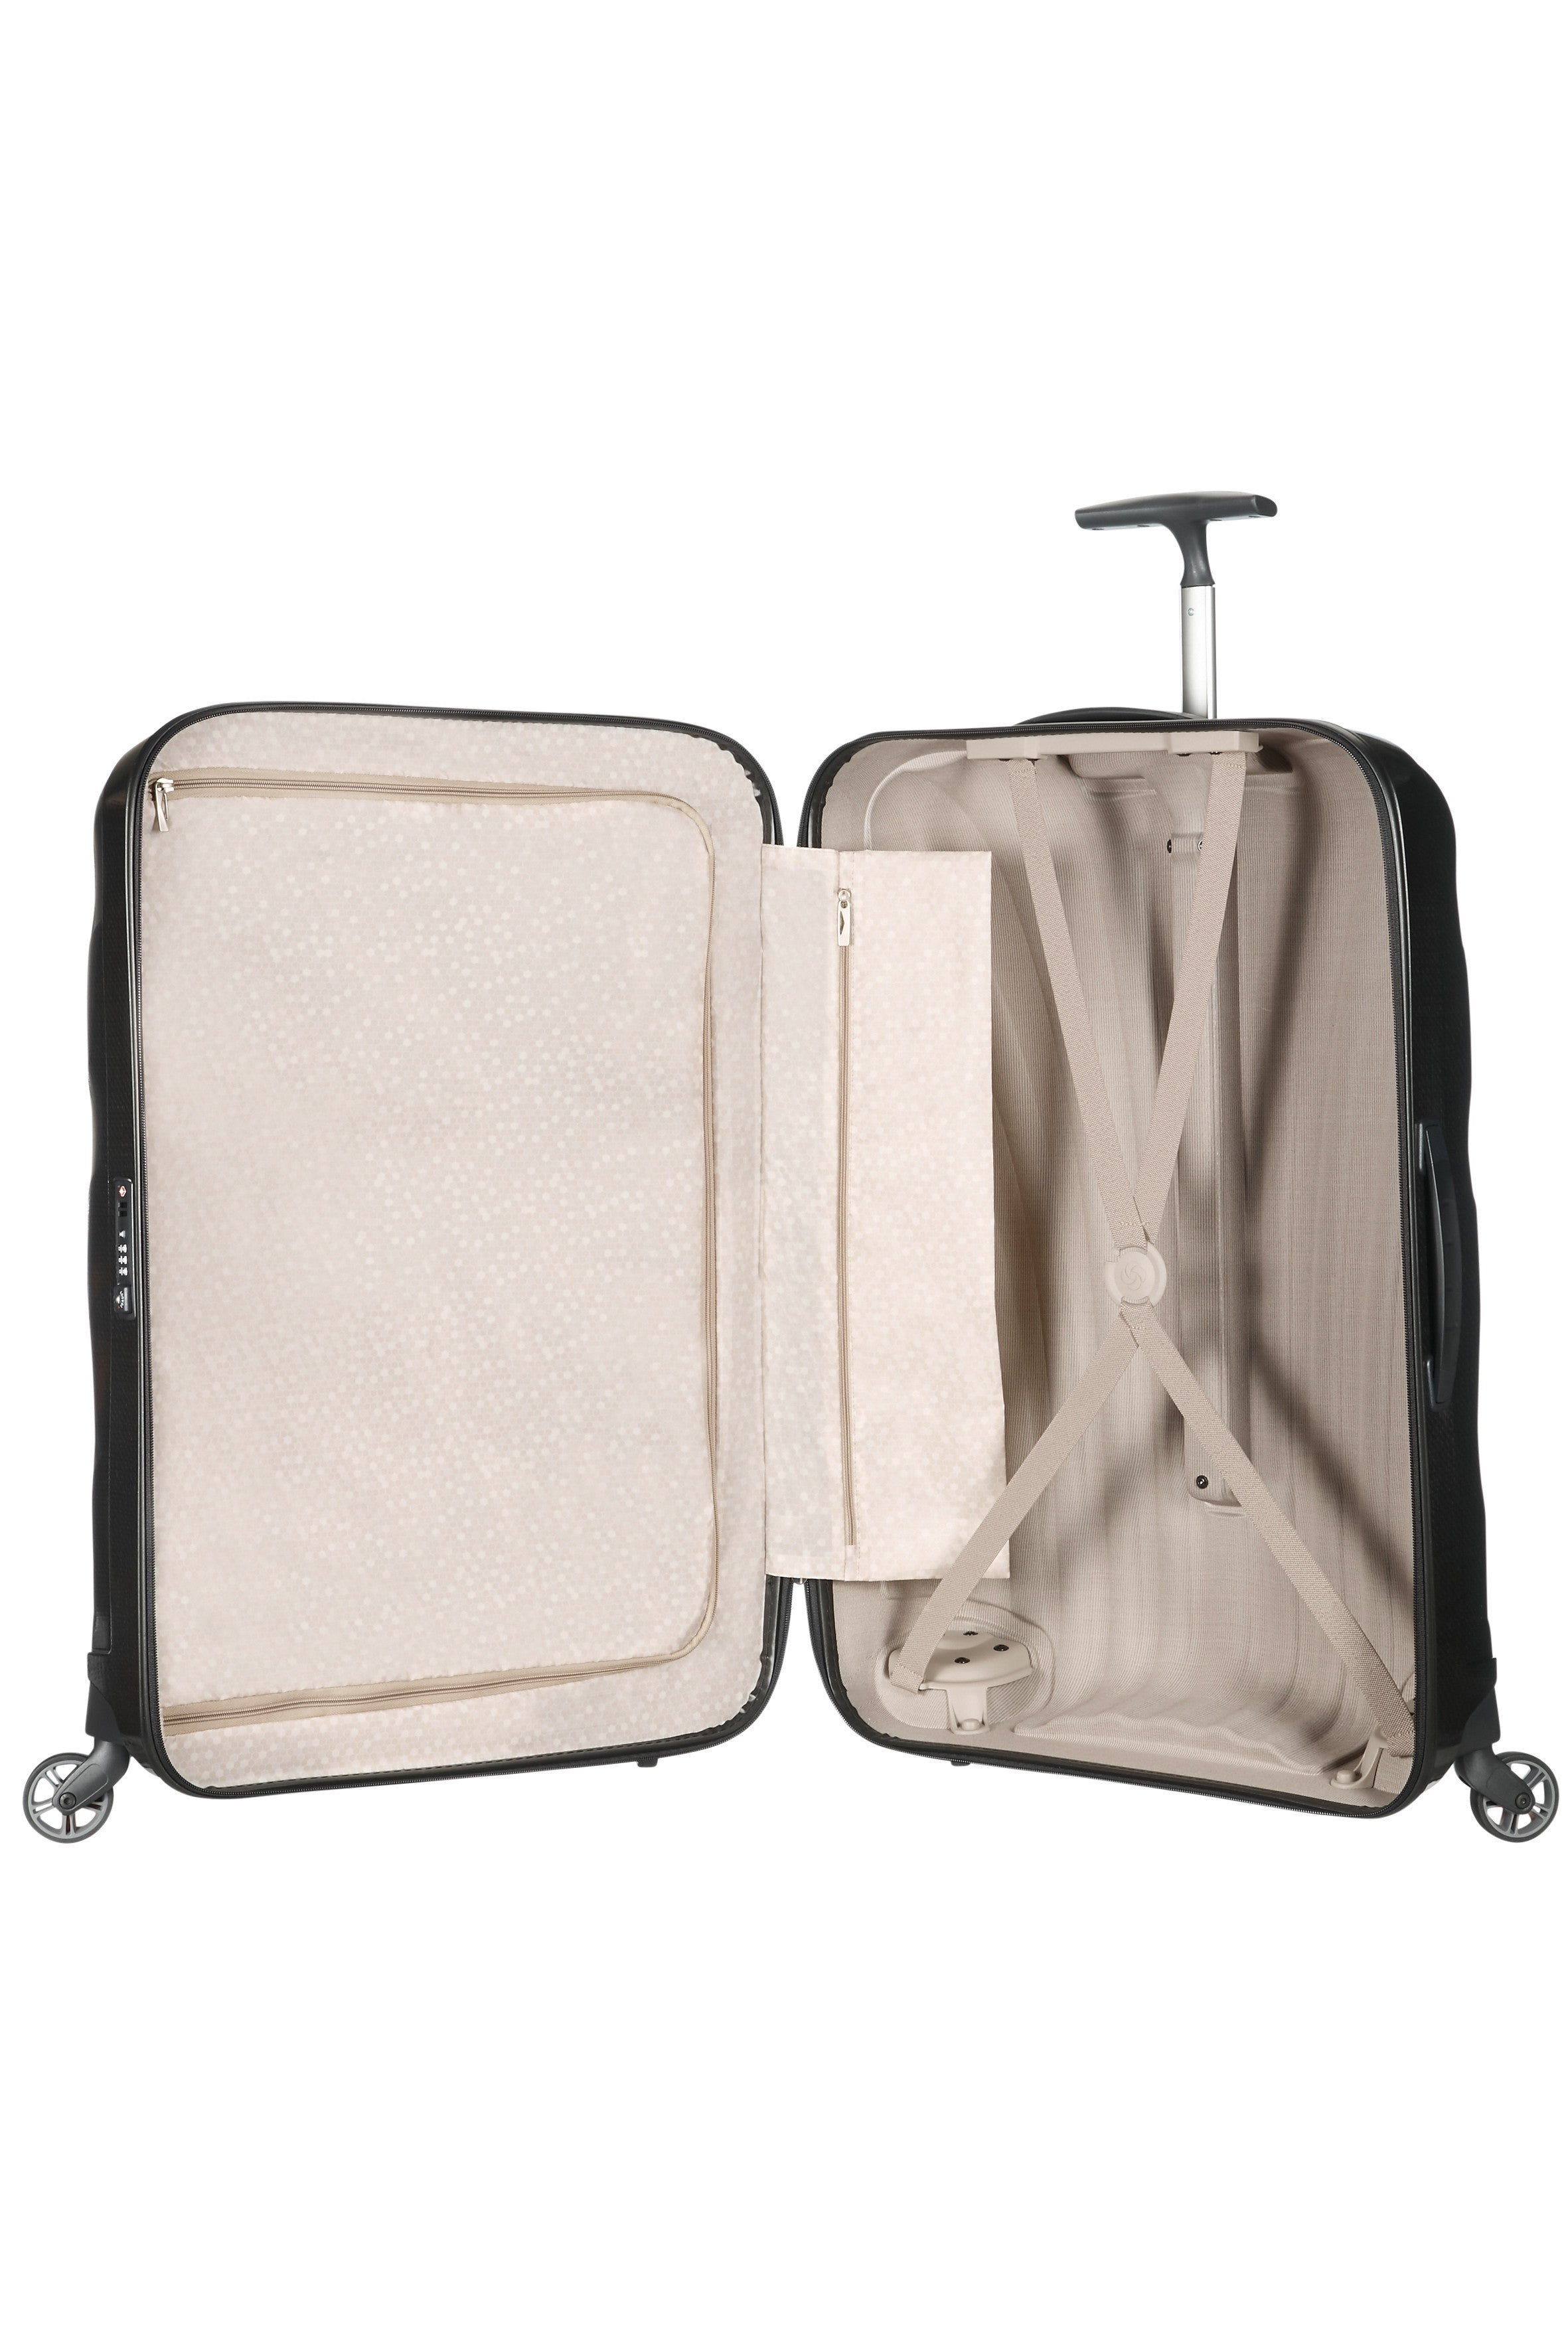 Samsonite Cosmolite Spinner 55cm Black